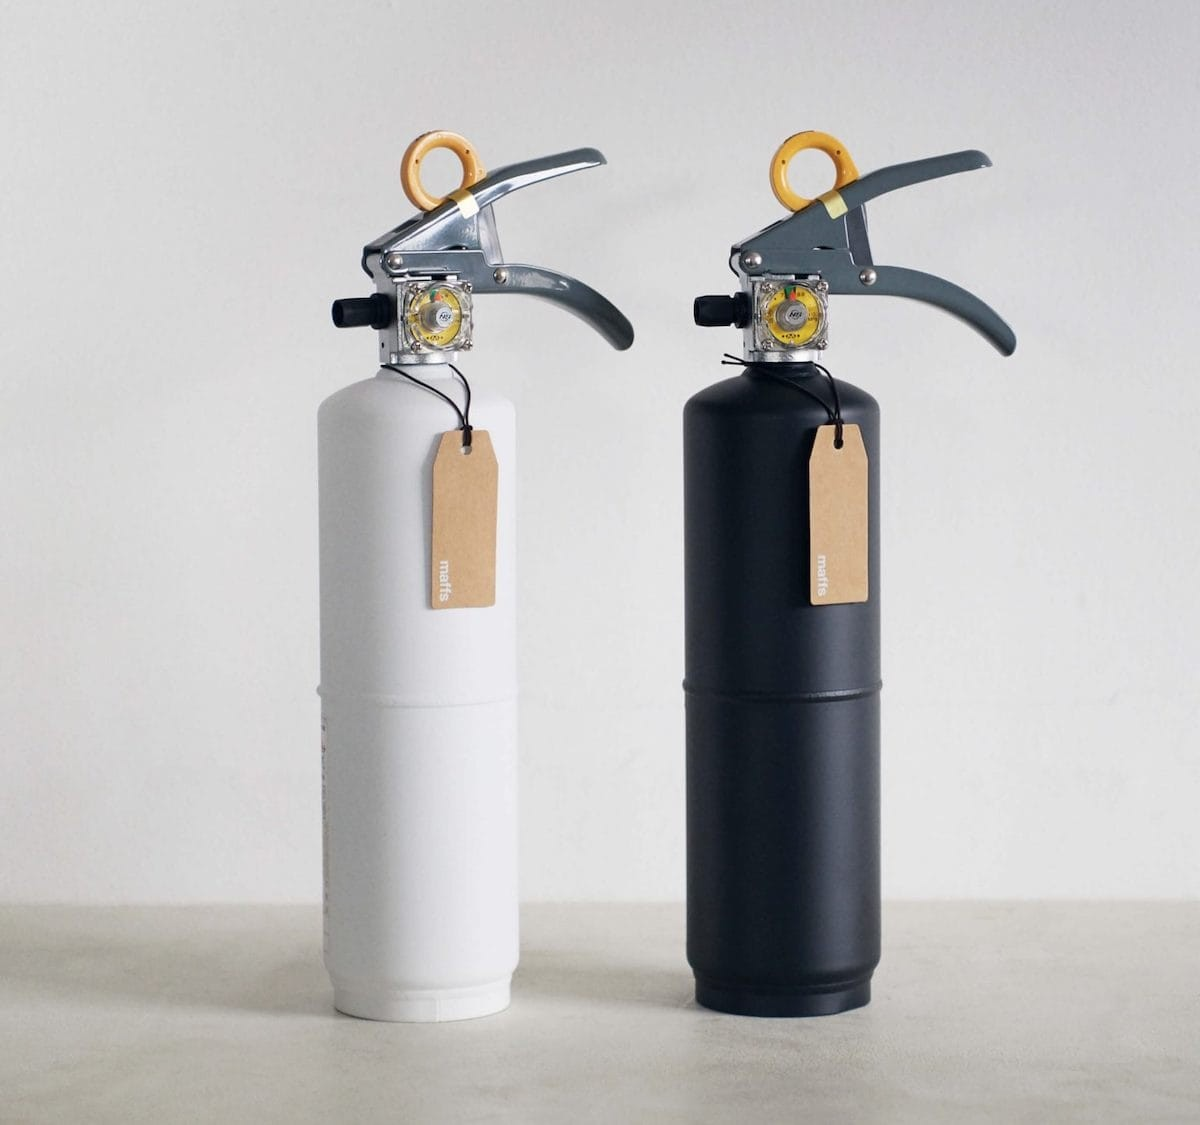 +maffs Residential Fire Extinguisher has a design that will complement your home